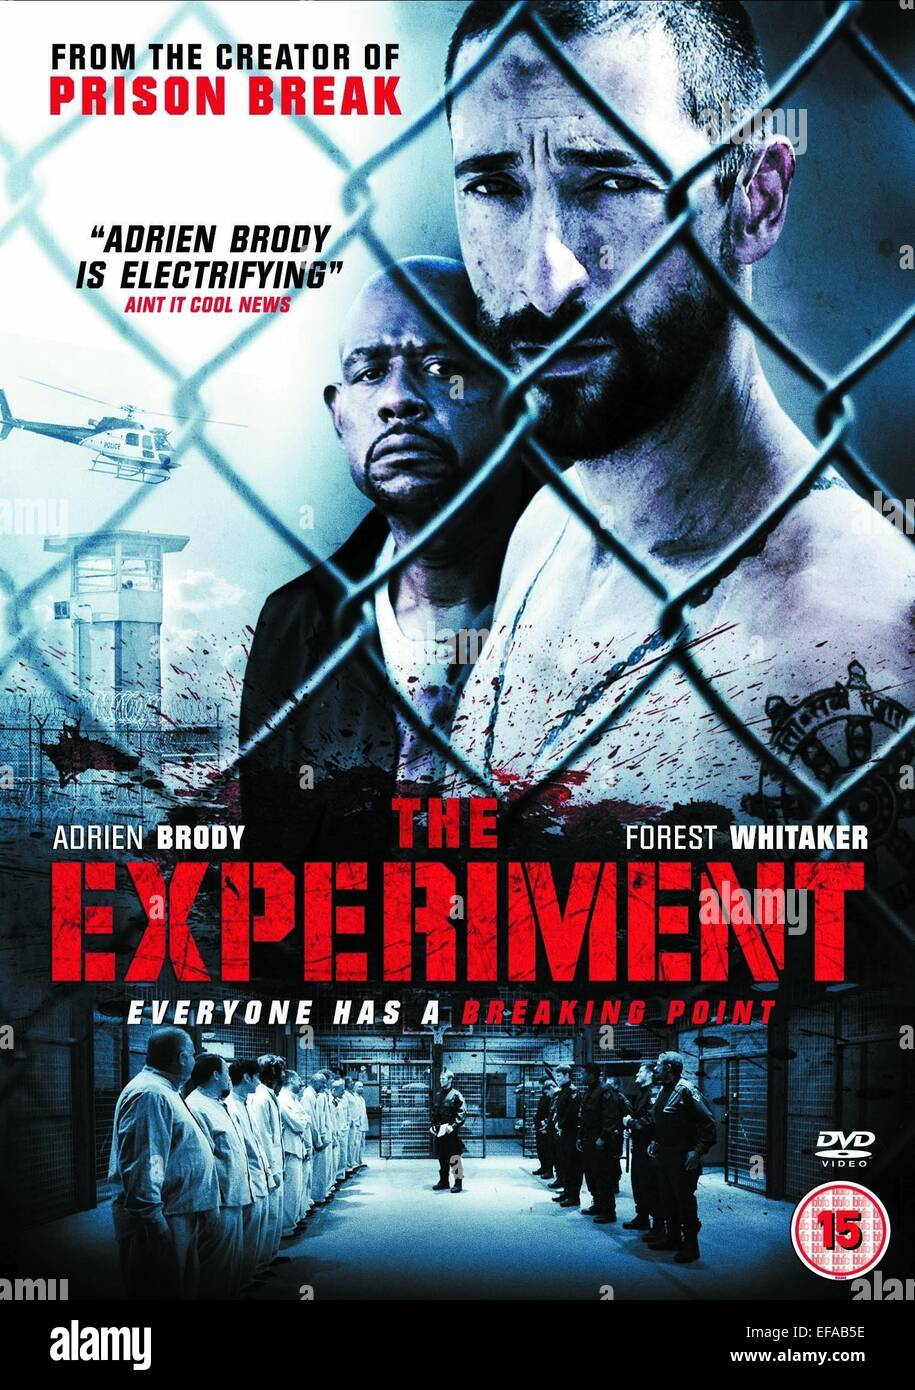 The Experiment 2010 English (Eng Subs) x264 Bluray 480p [276.69 MB] | 720p [818.92 MB] mkv